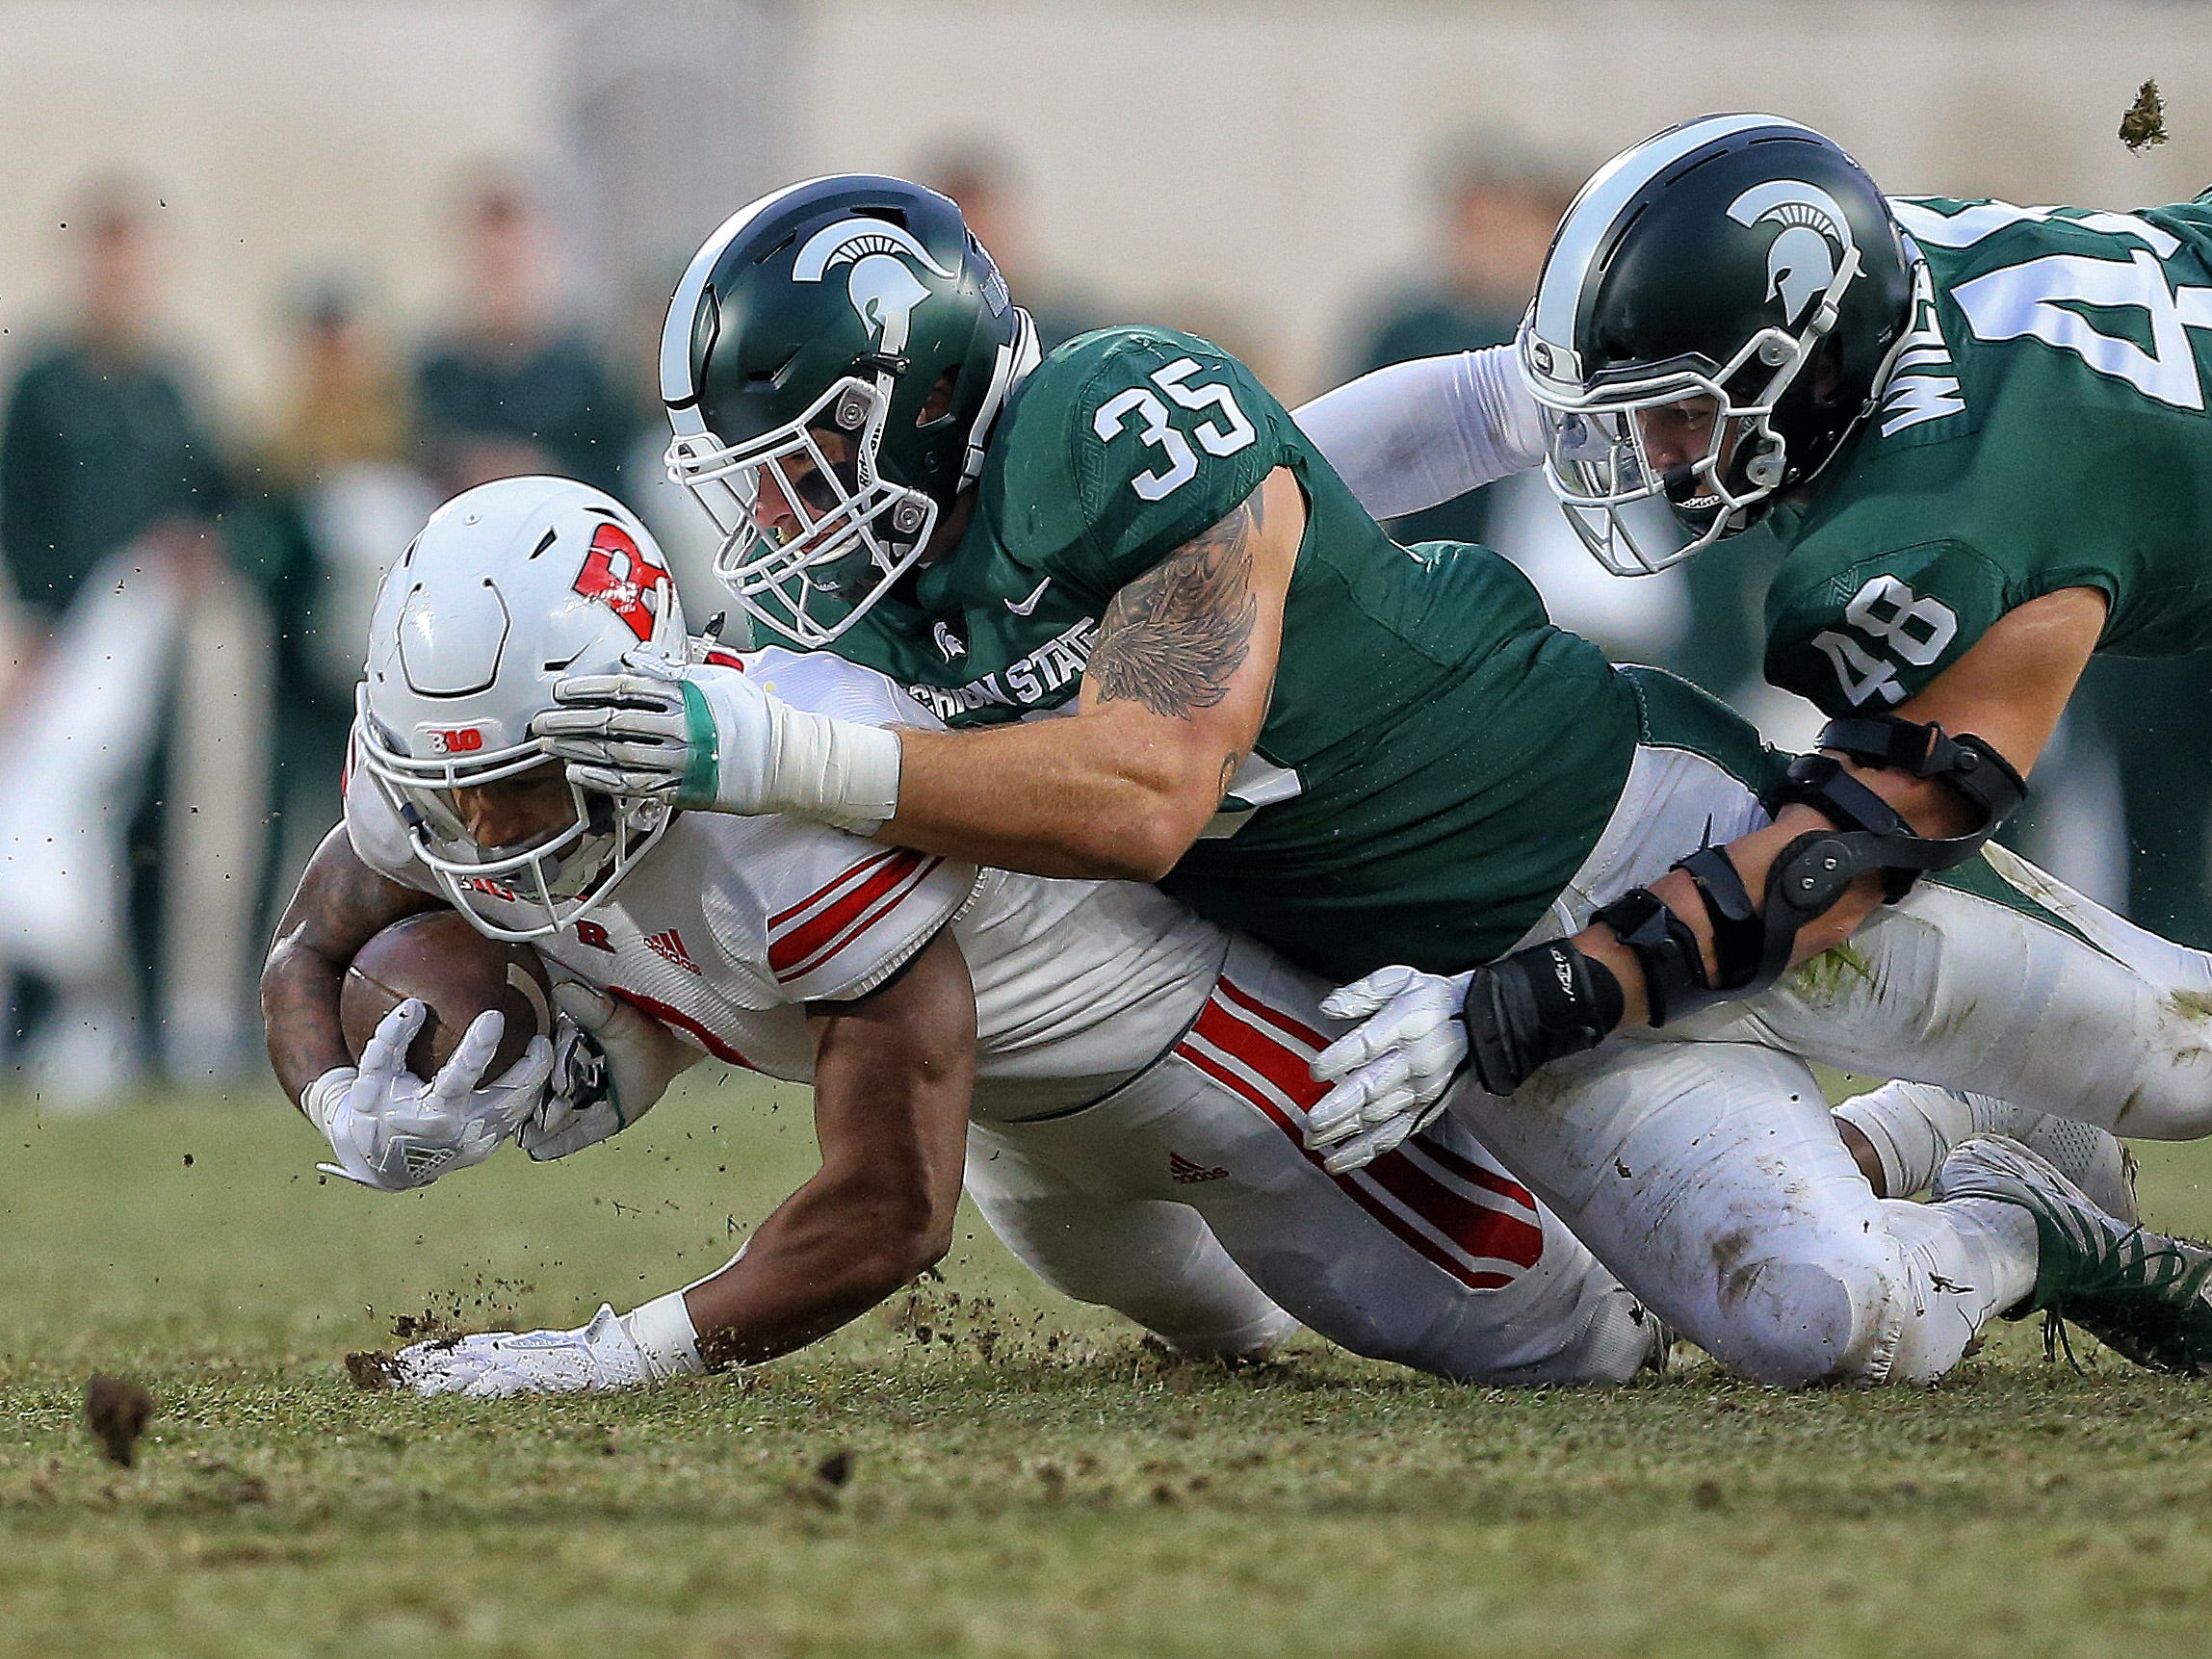 Rutgers Scarlet Knights running back Raheem Blackshear (2) is tackled by Michigan State Spartans linebacker Joe Bachie (35) during the first quarter of a game at Spartan Stadium.